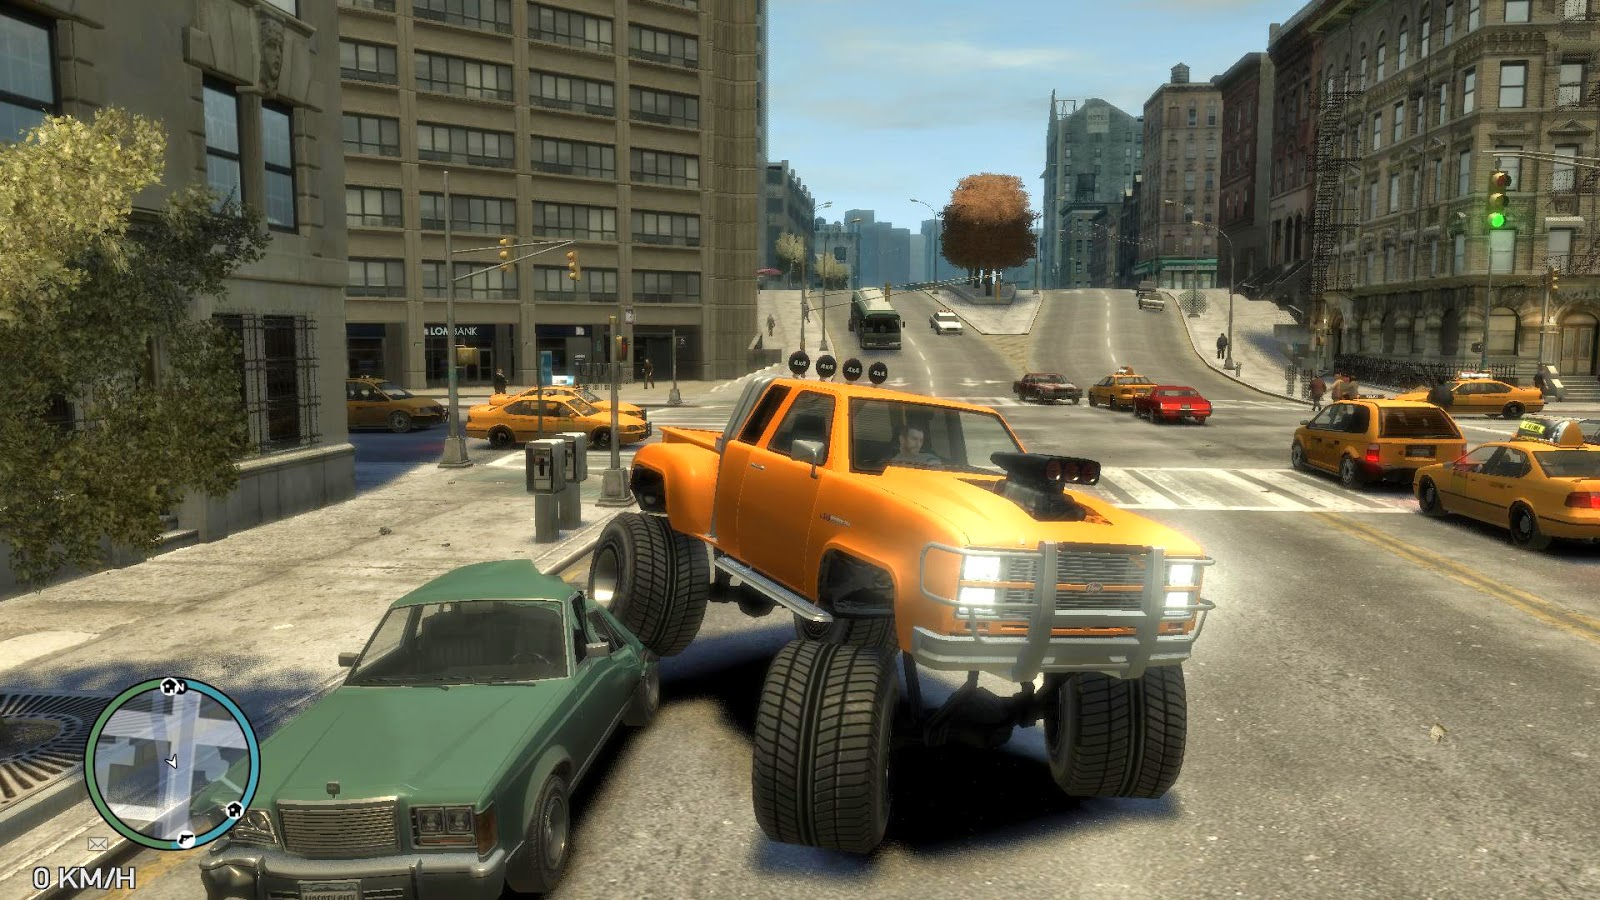 GTA 4 Full Version Highly Compressed in 10 MB